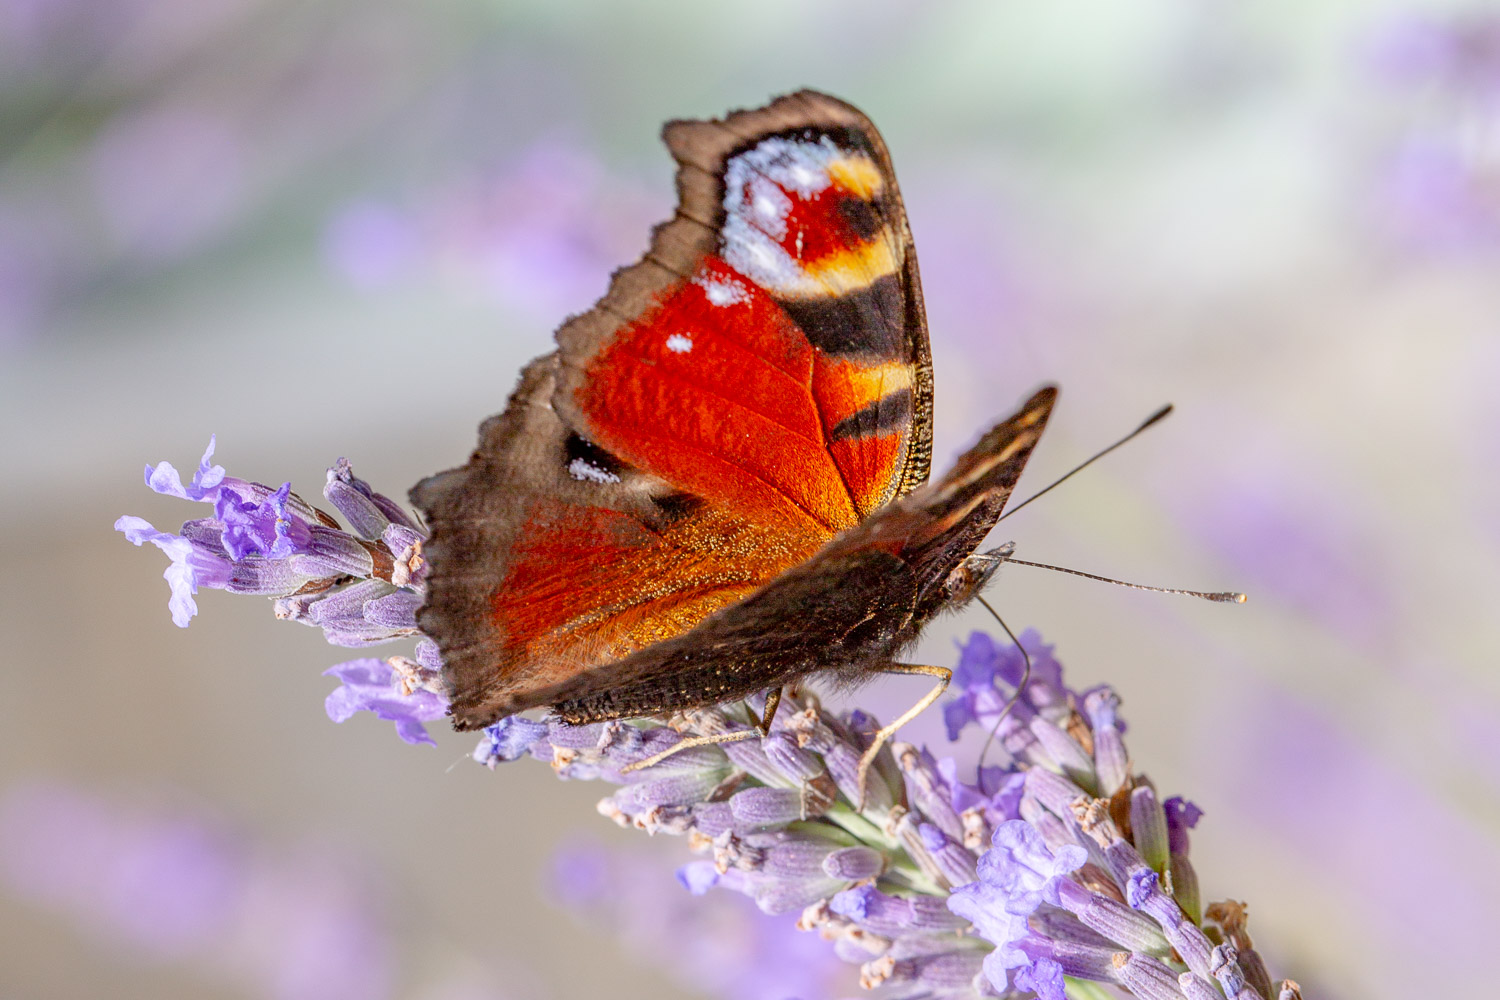 Peacock butterfly with a blurred purple background